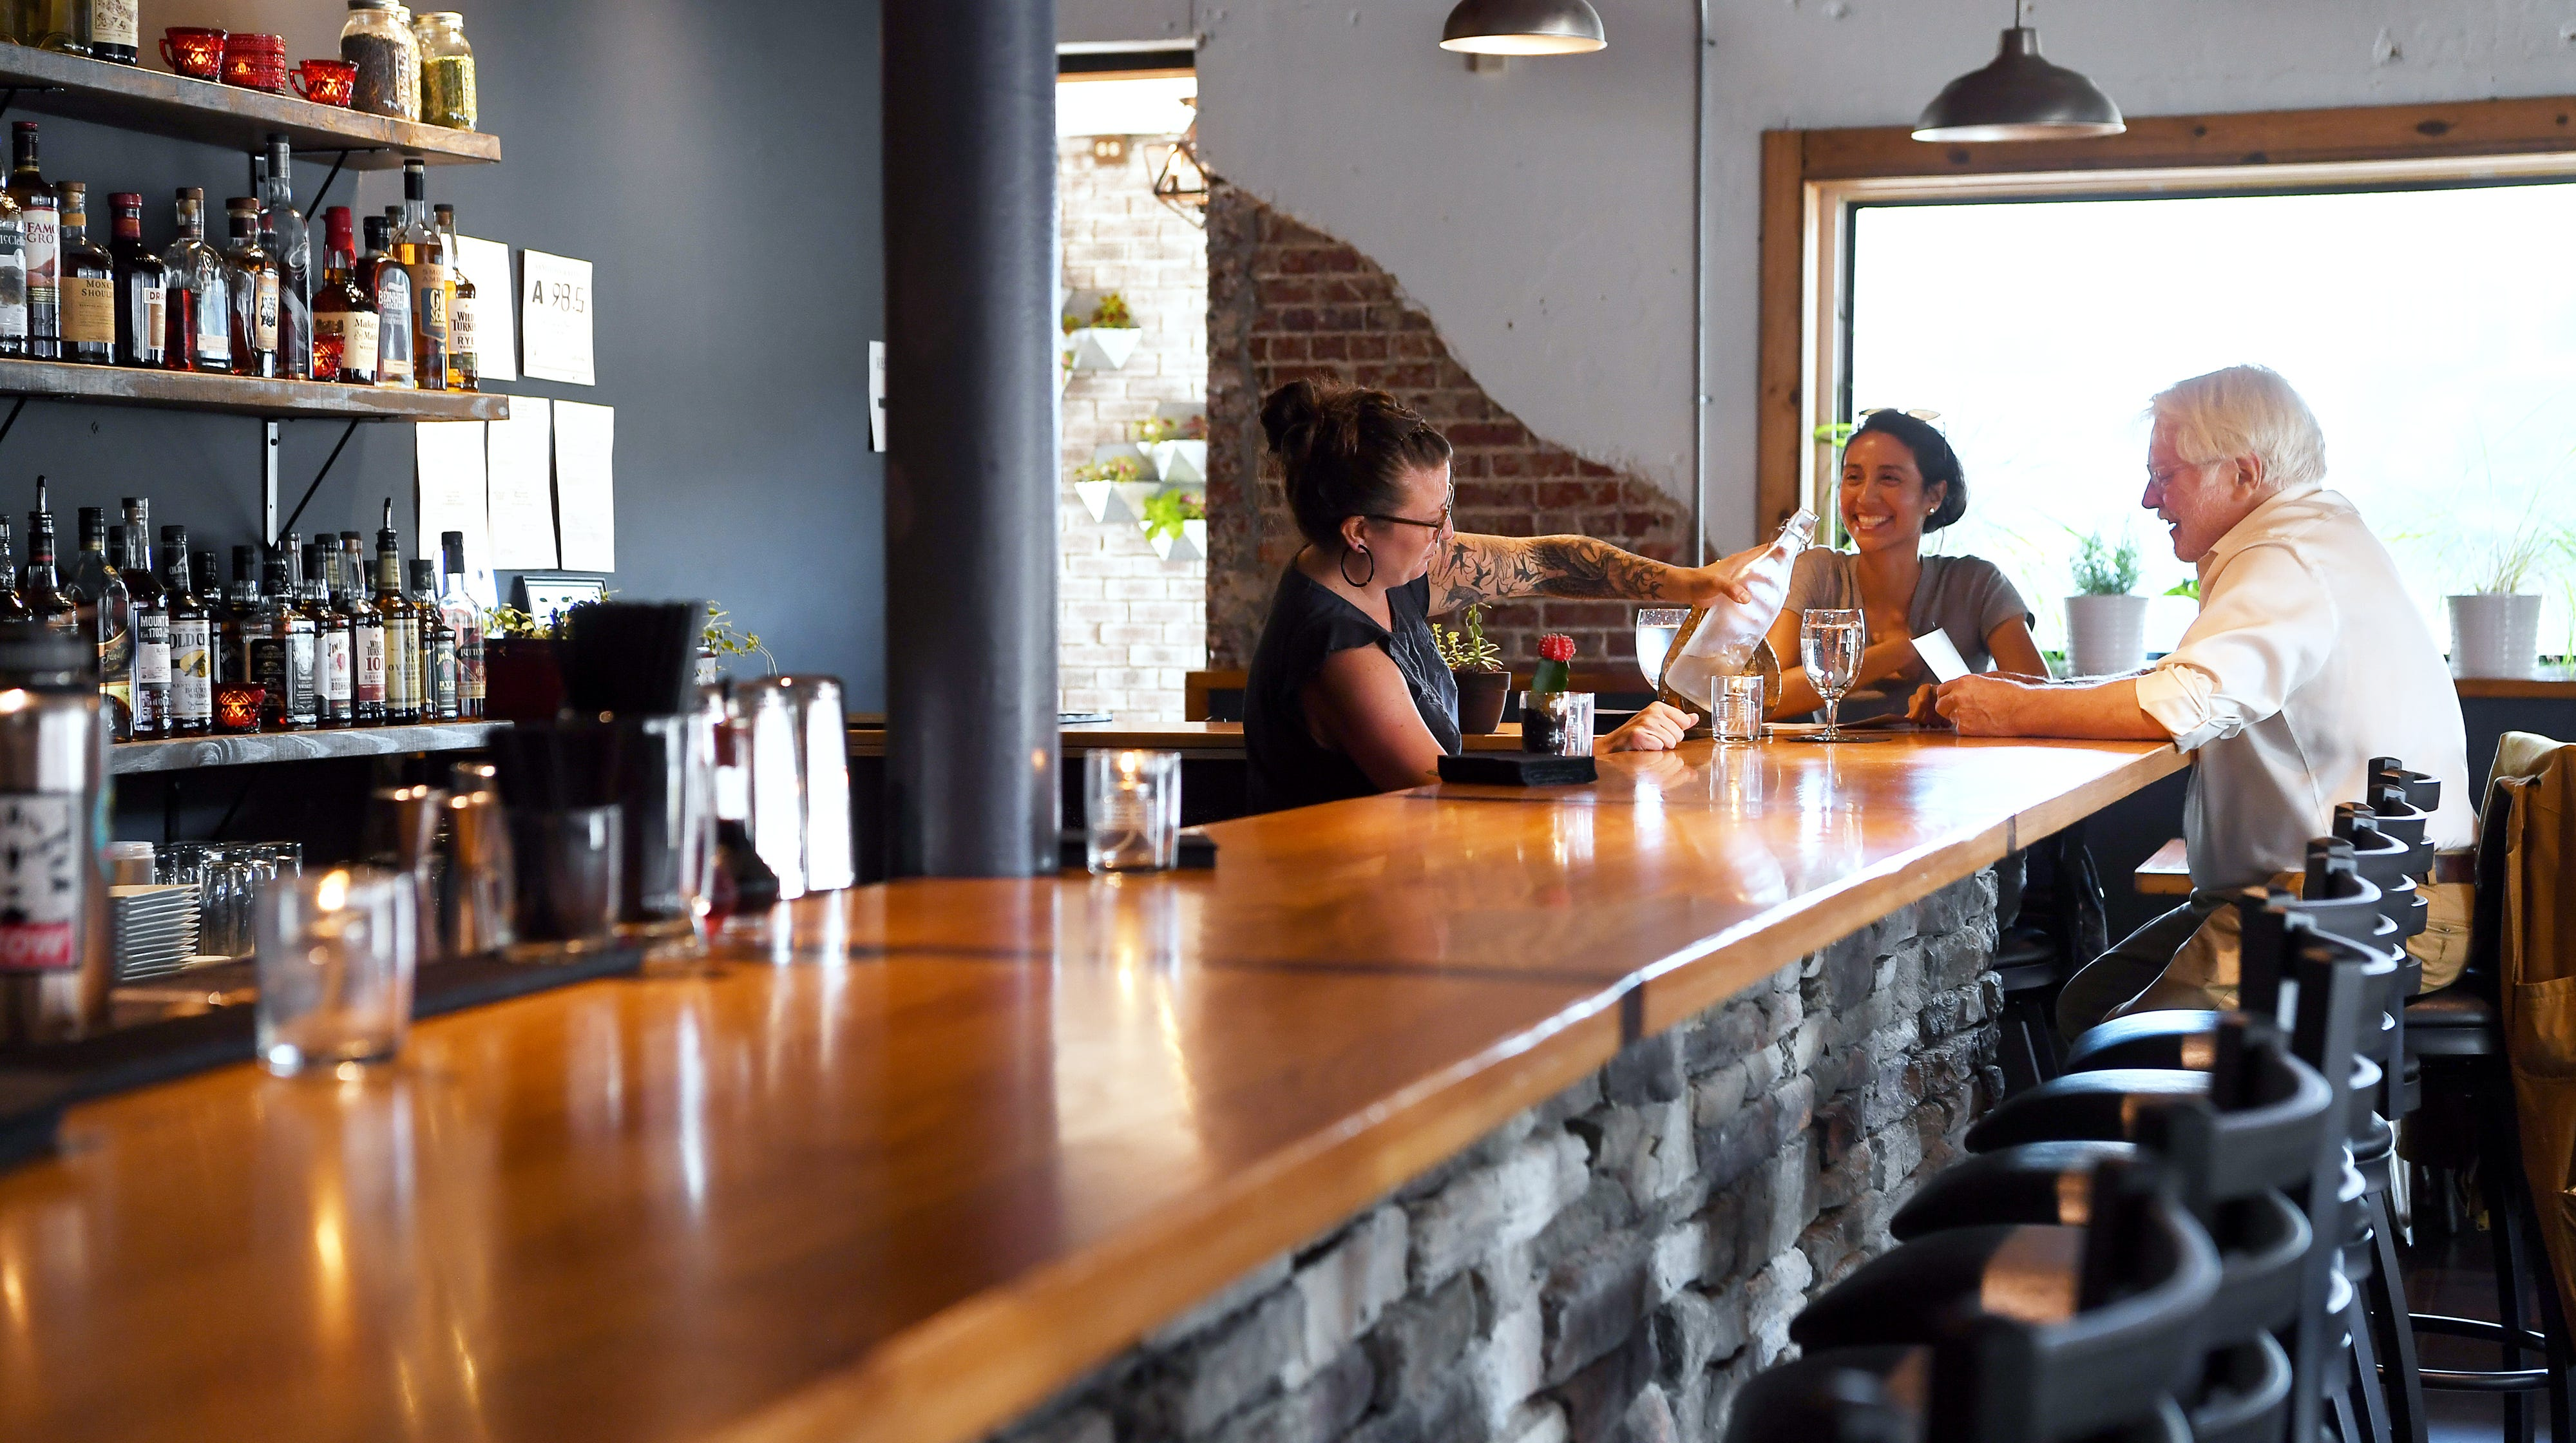 Dining review: The Scarlet Bee is inviting in North Asheville